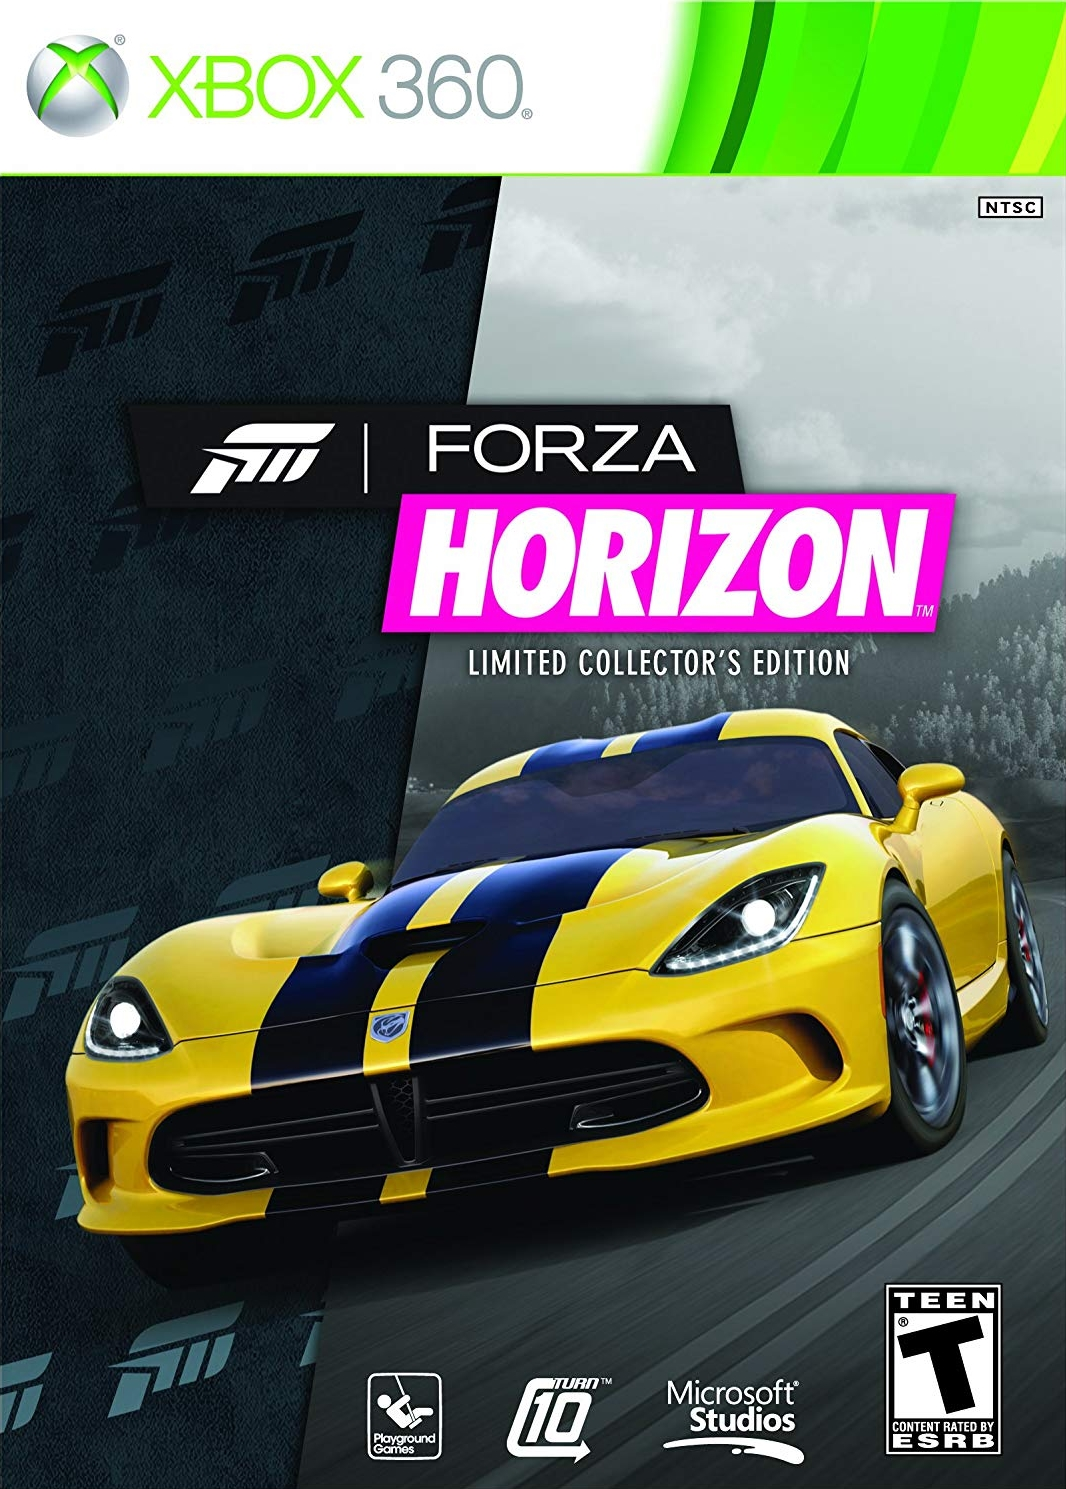 Forza Horizon/Limited Collector's Edition